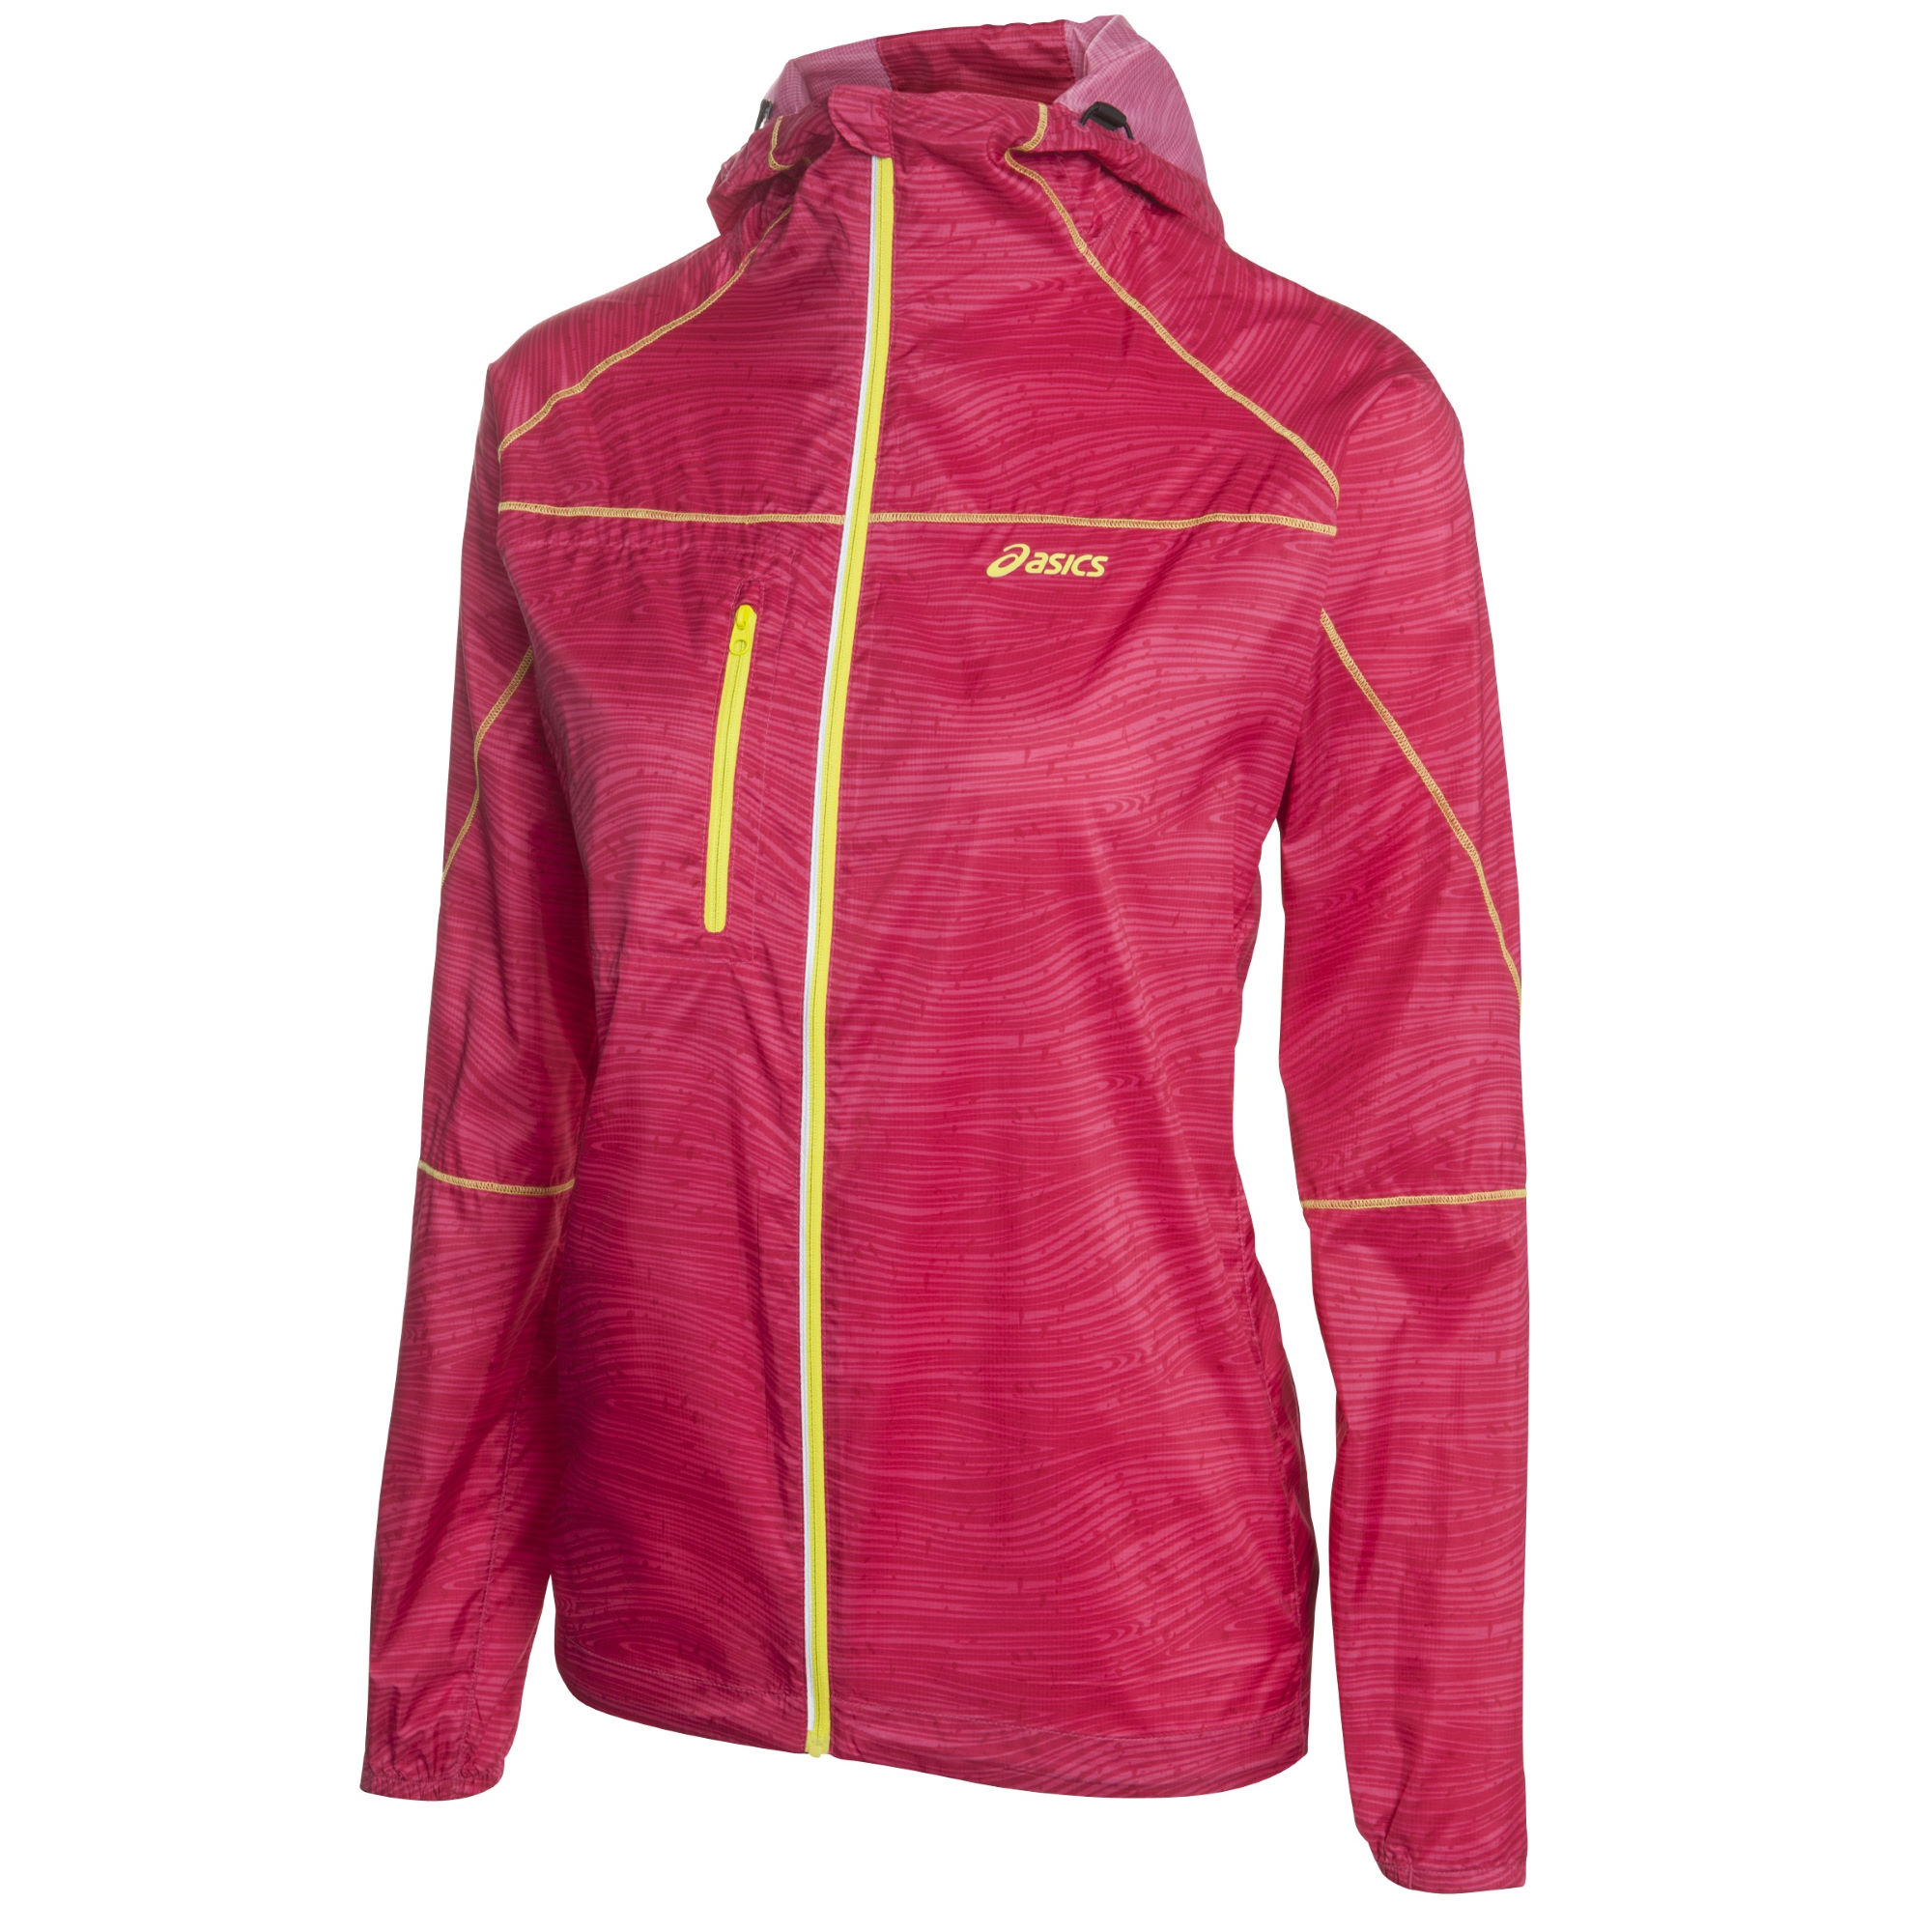 vestes de running coupe vent asics women 39 s fuji packable jacket aw14 wiggle france. Black Bedroom Furniture Sets. Home Design Ideas